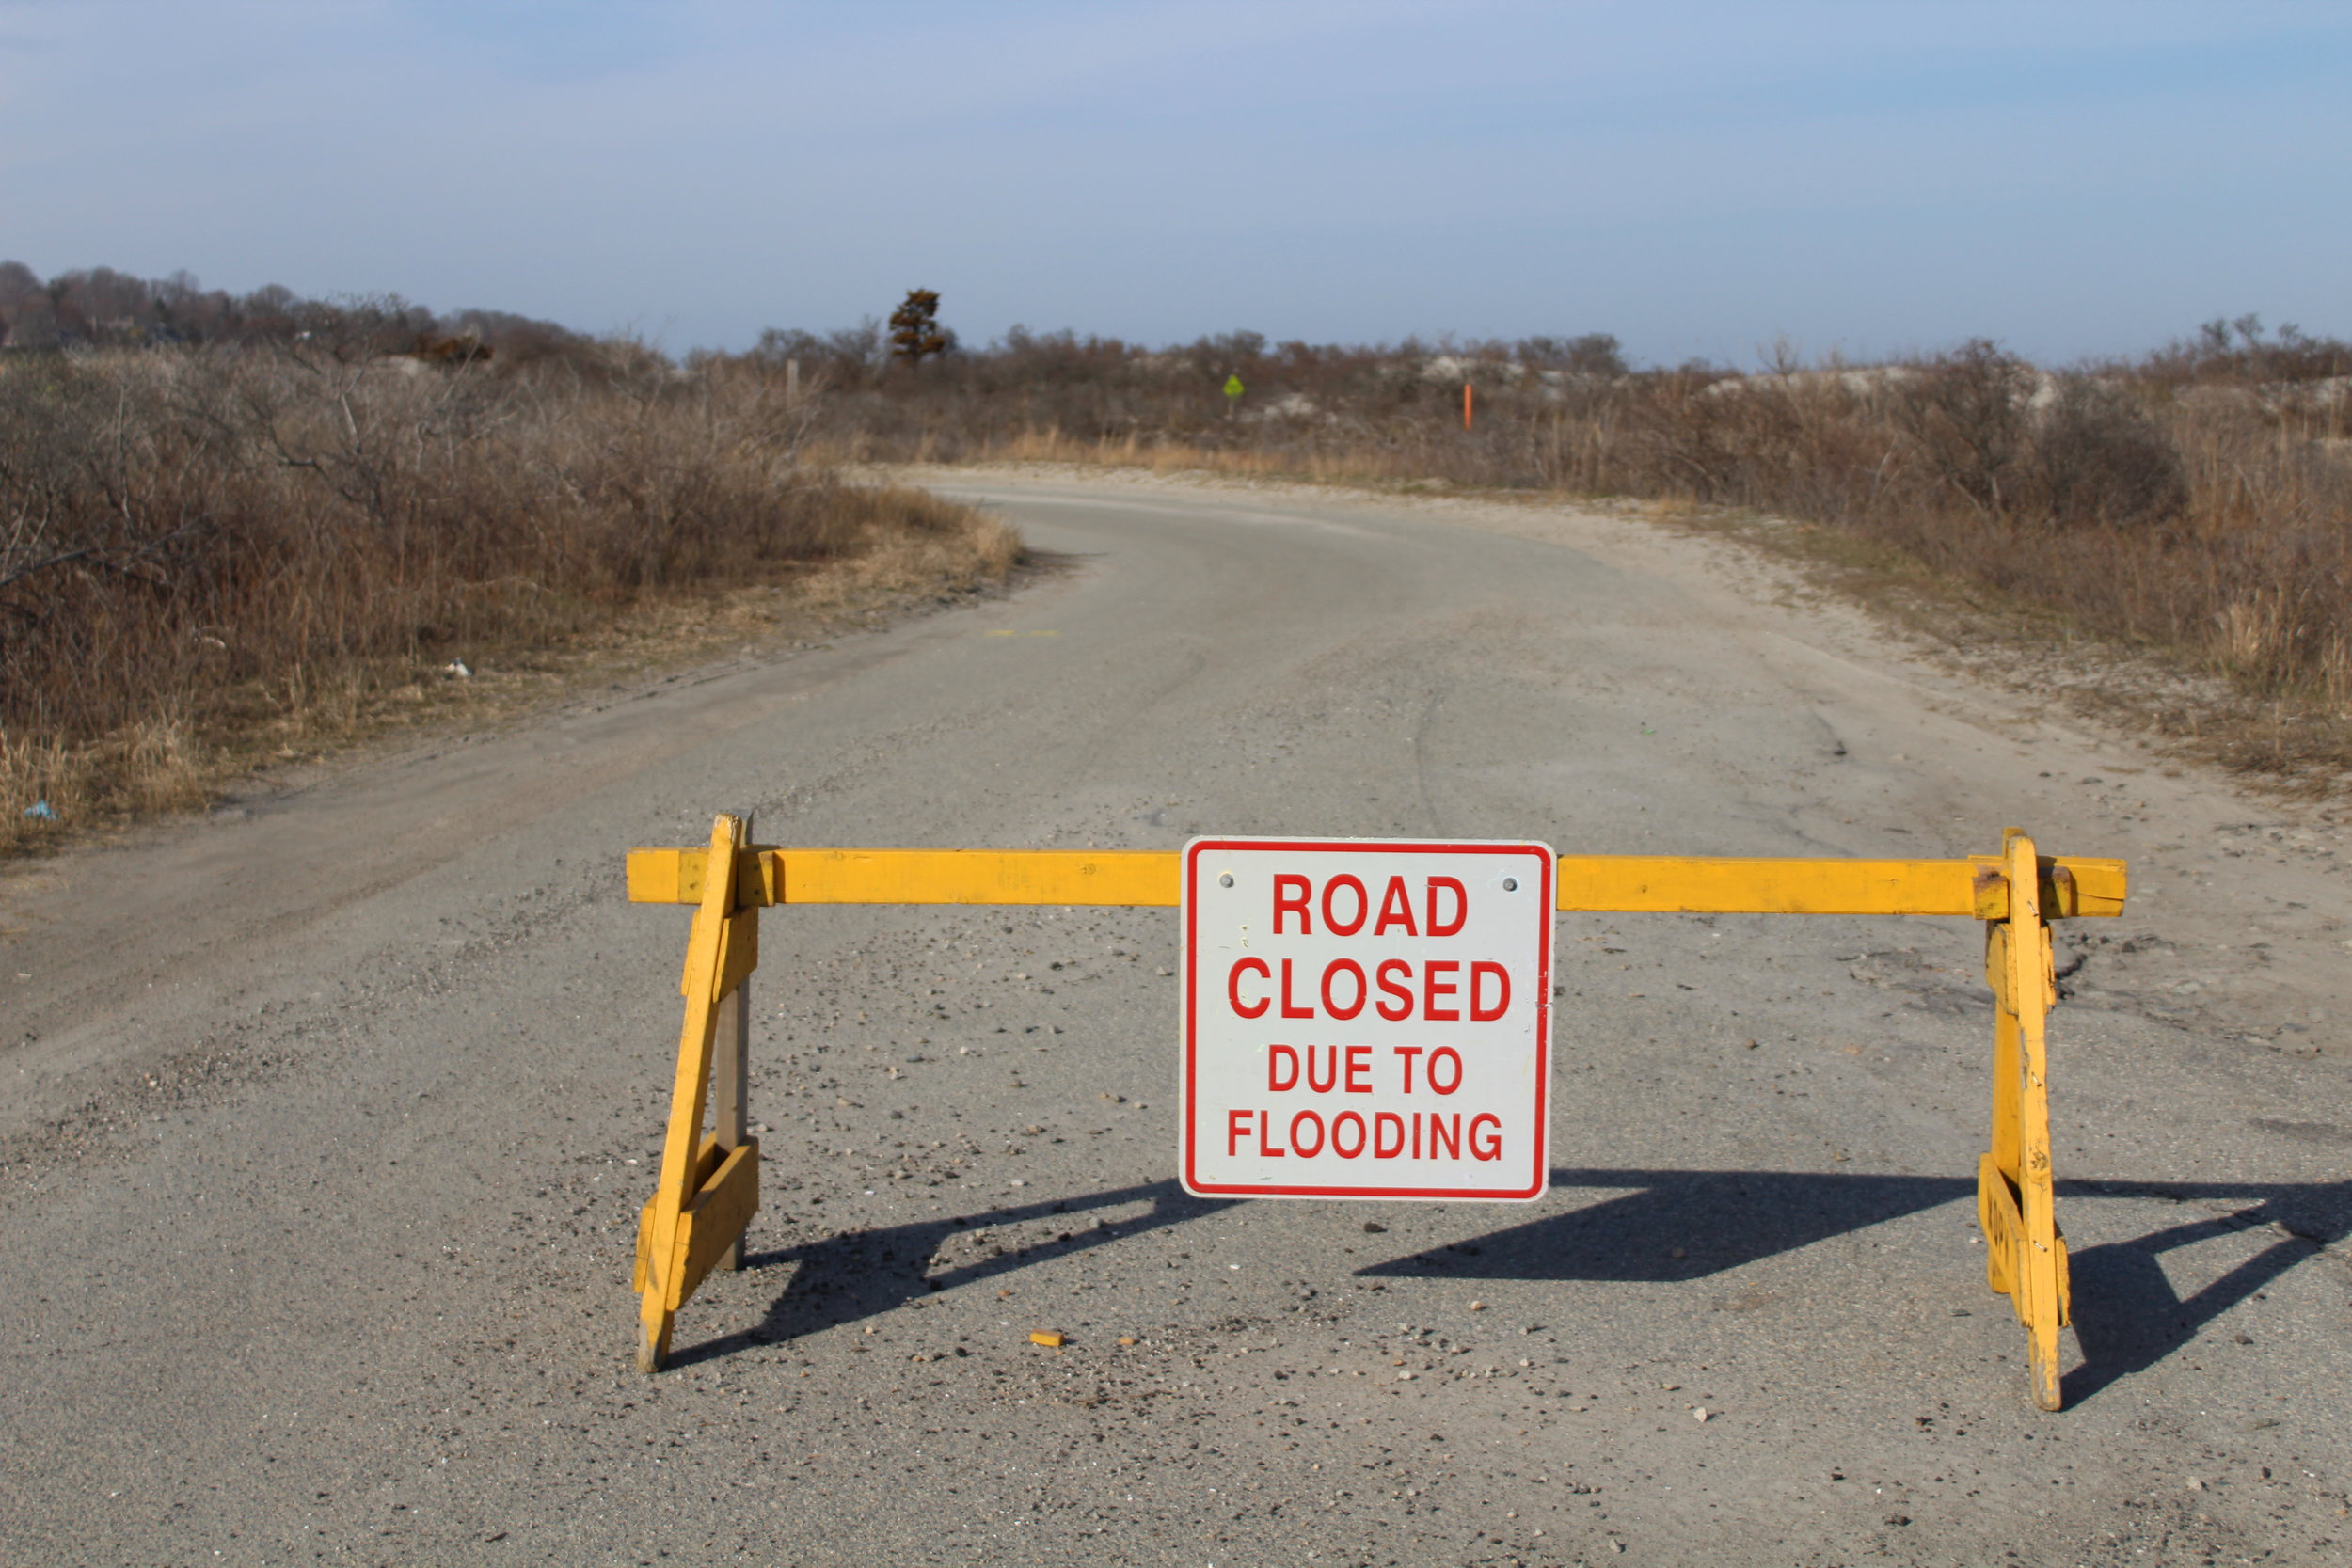 Prior to recent improvements, Third Beach Road in Middletown frequently closed due to flooding.